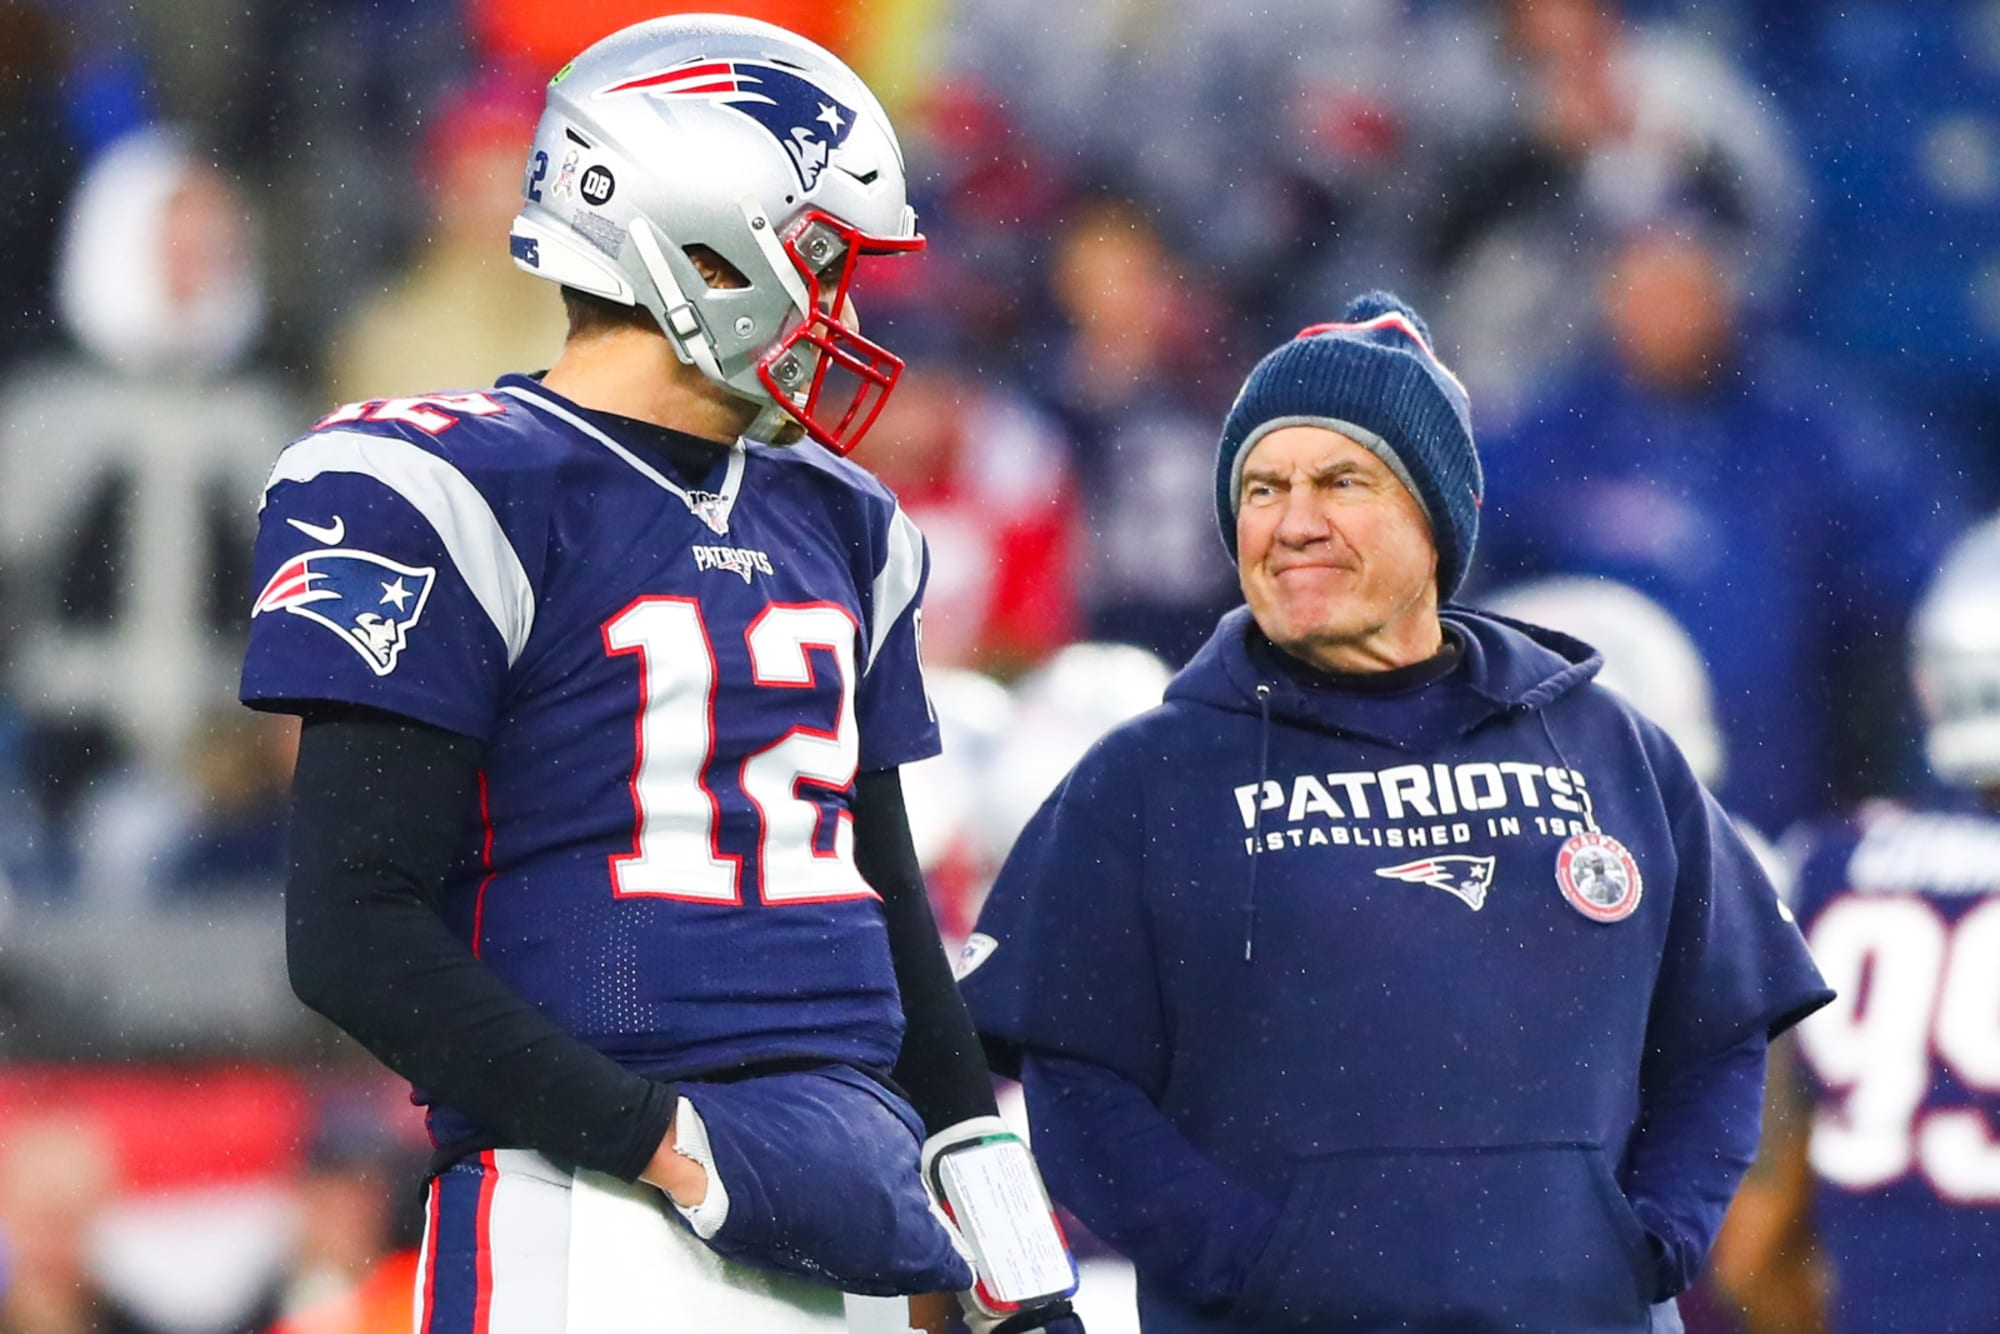 Patriots: Tom Brady, Bill Belichick rift will never overshadow team's legacy